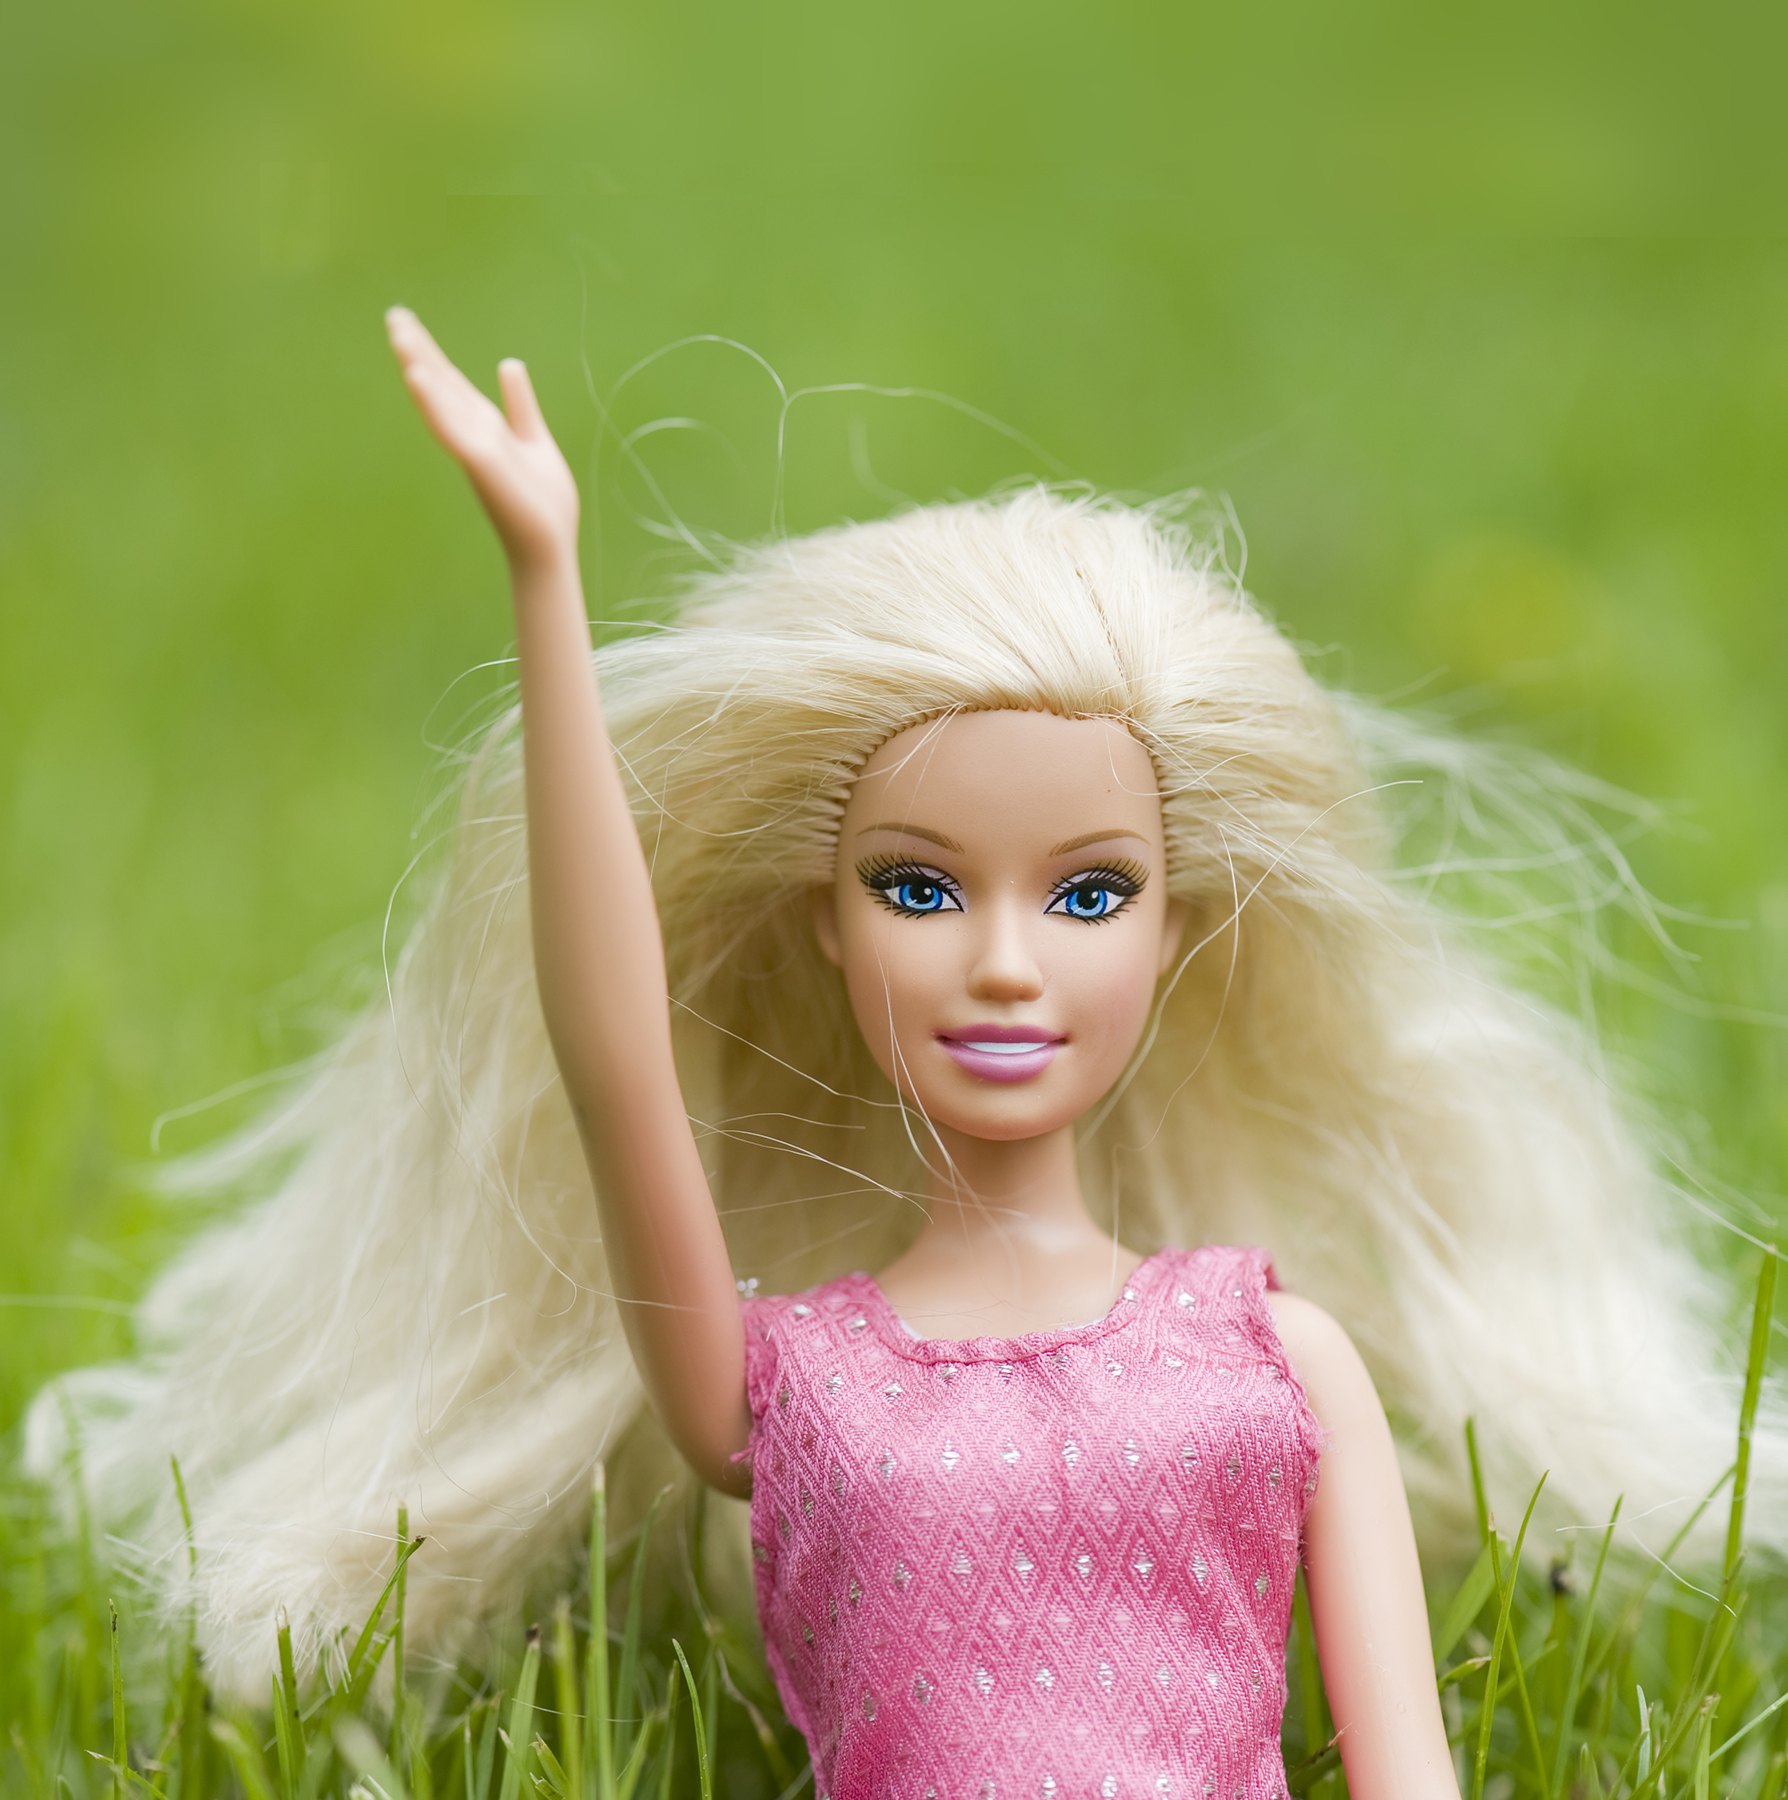 Barbie in the grass